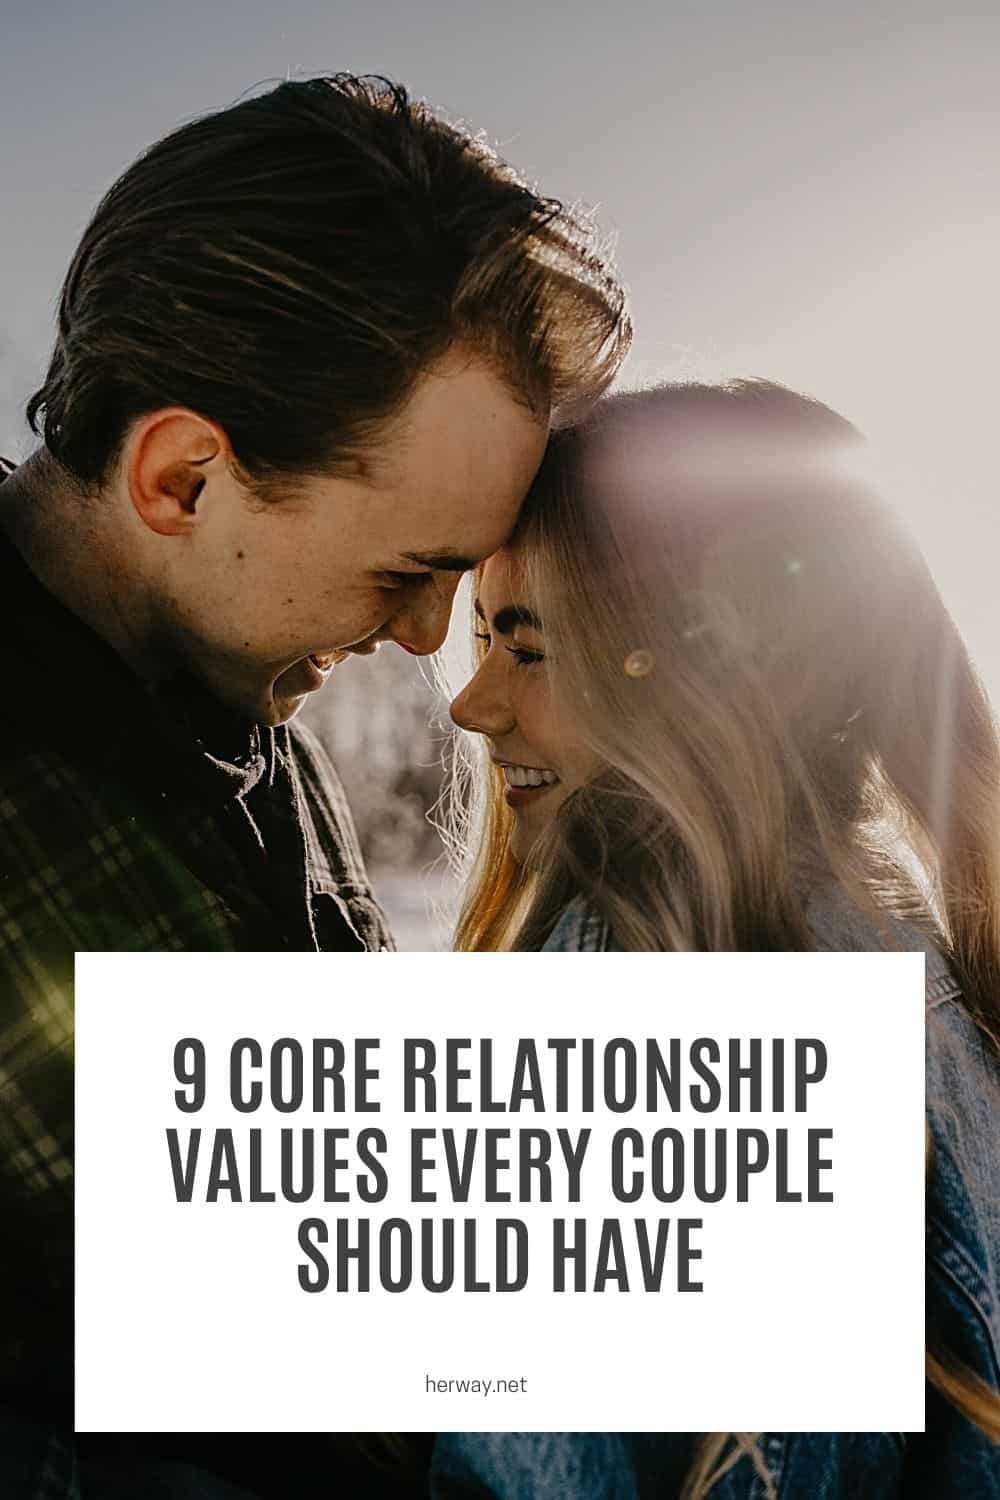 9 Core Relationship Values Every Couple Should Have